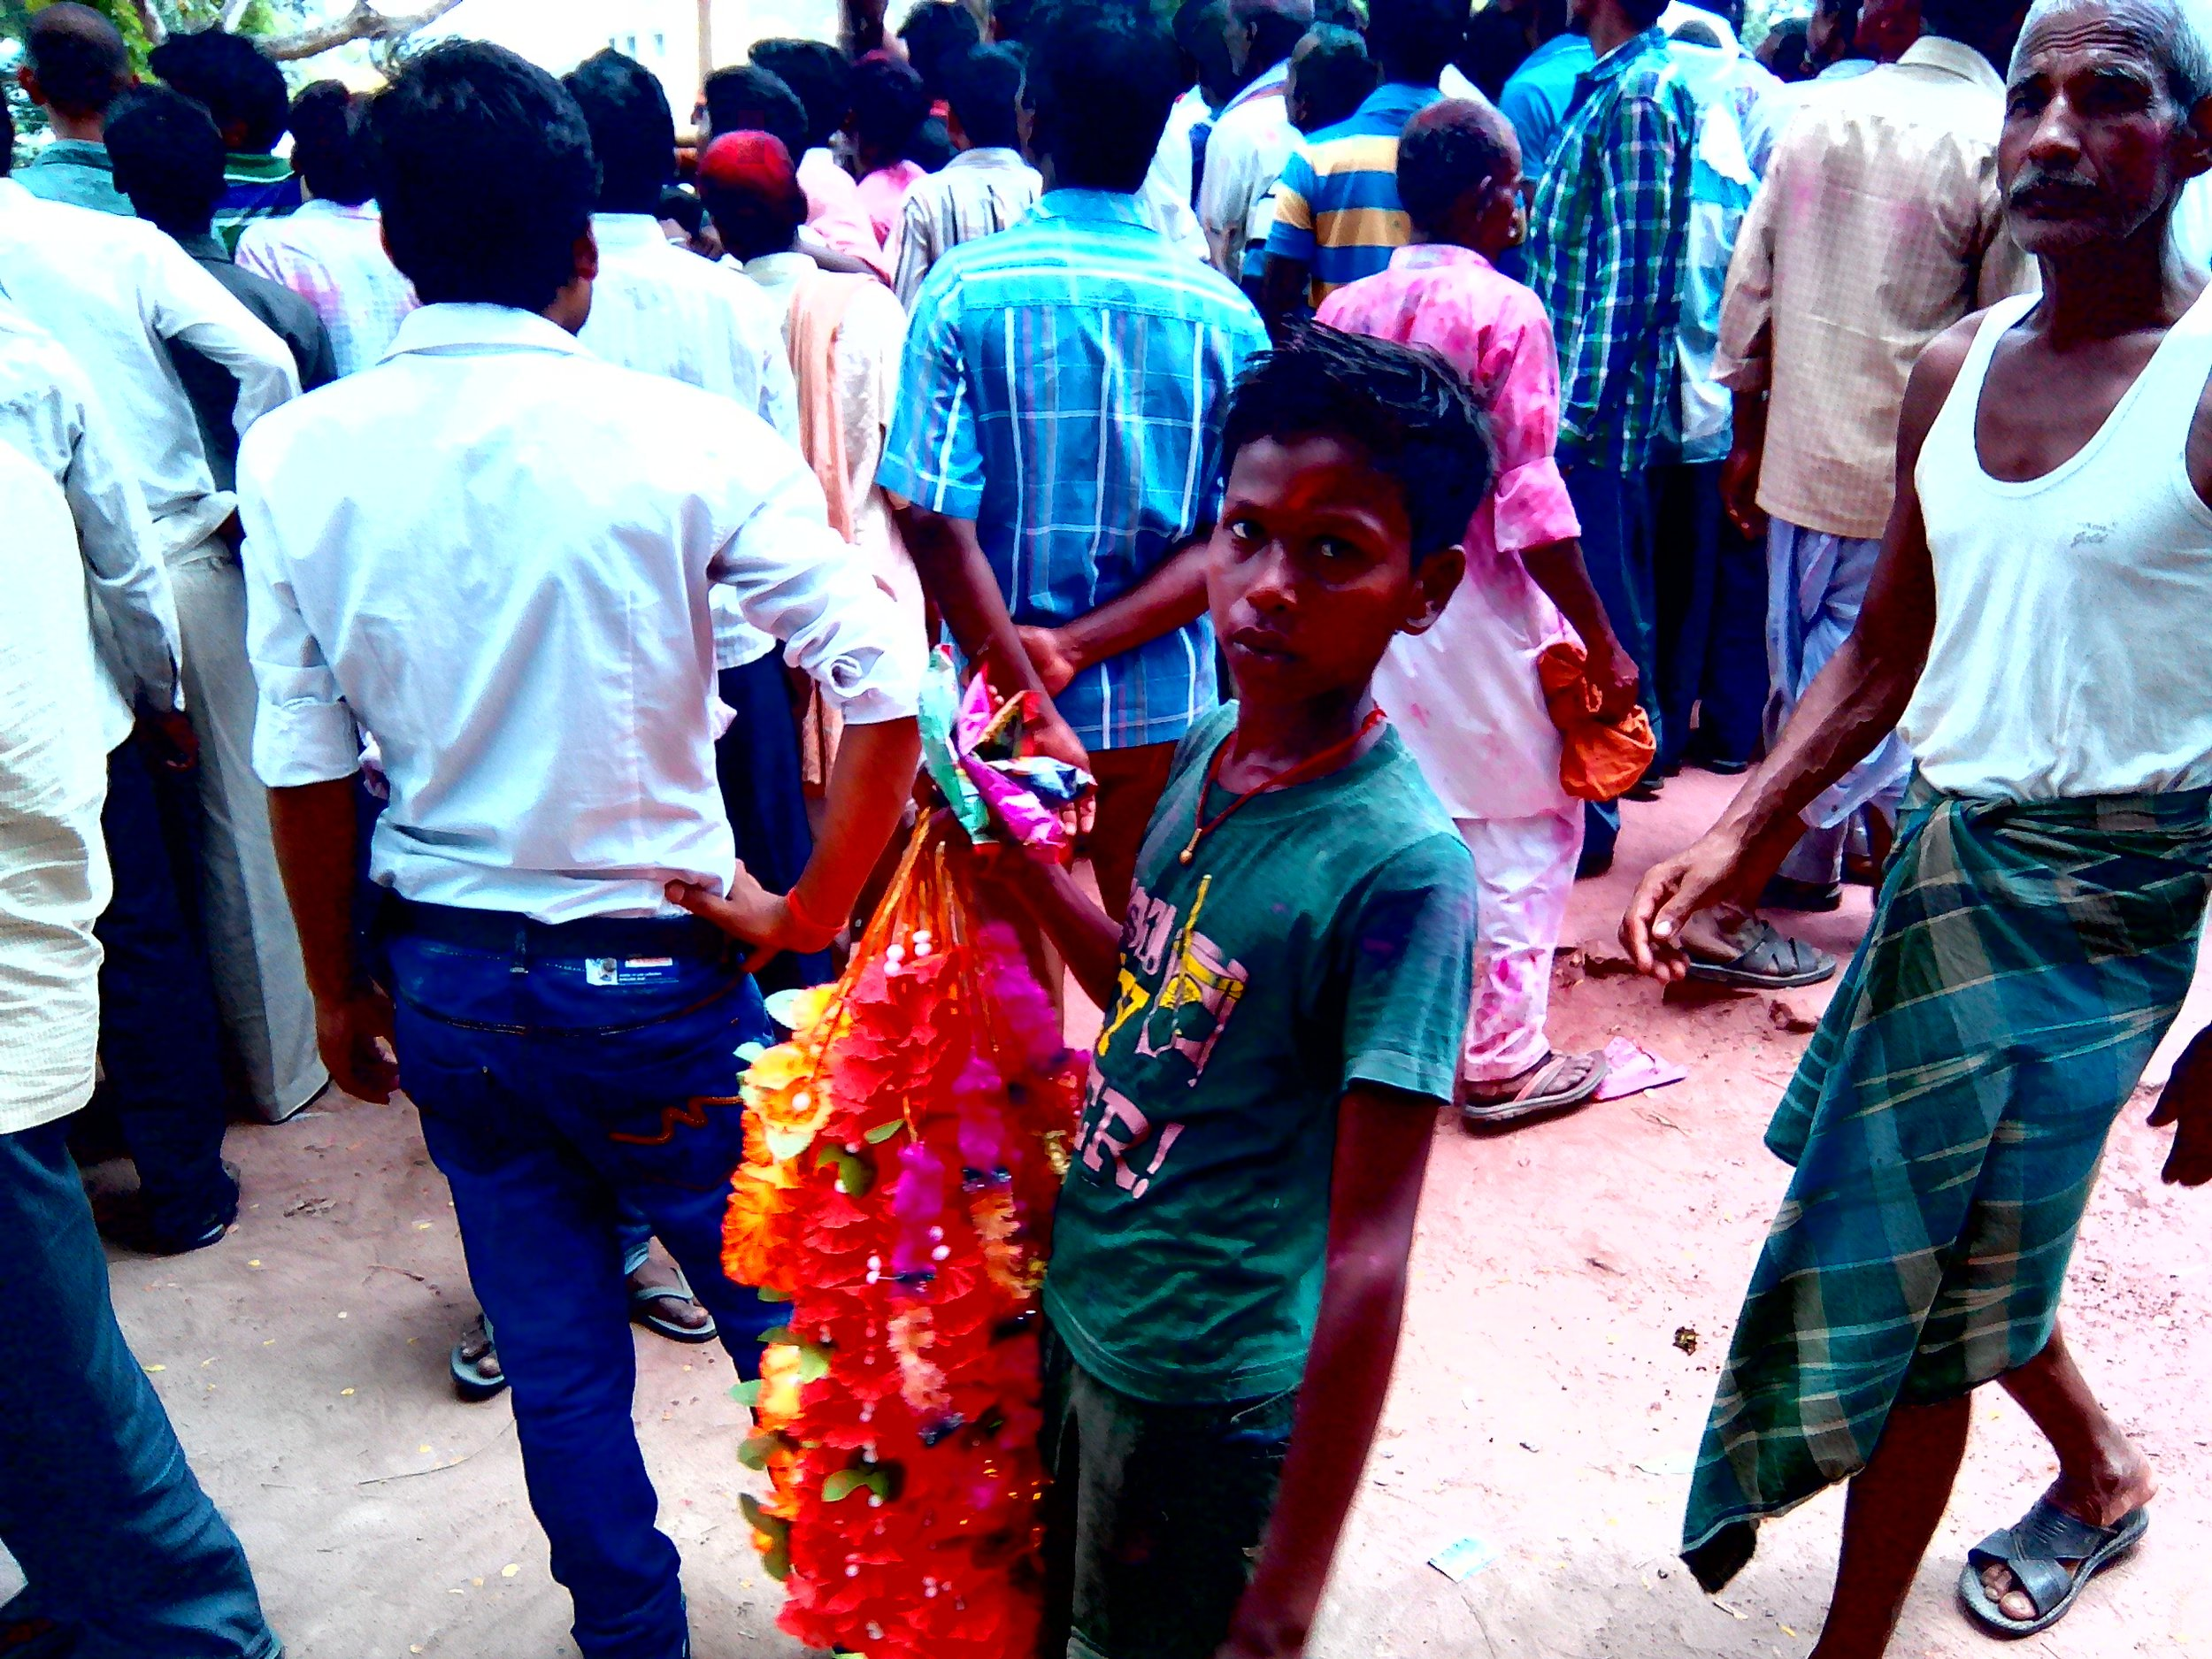 A boy sells garlands and gulal as the results are being declared for the village level elections. Credit: Zaheeb Ajmal